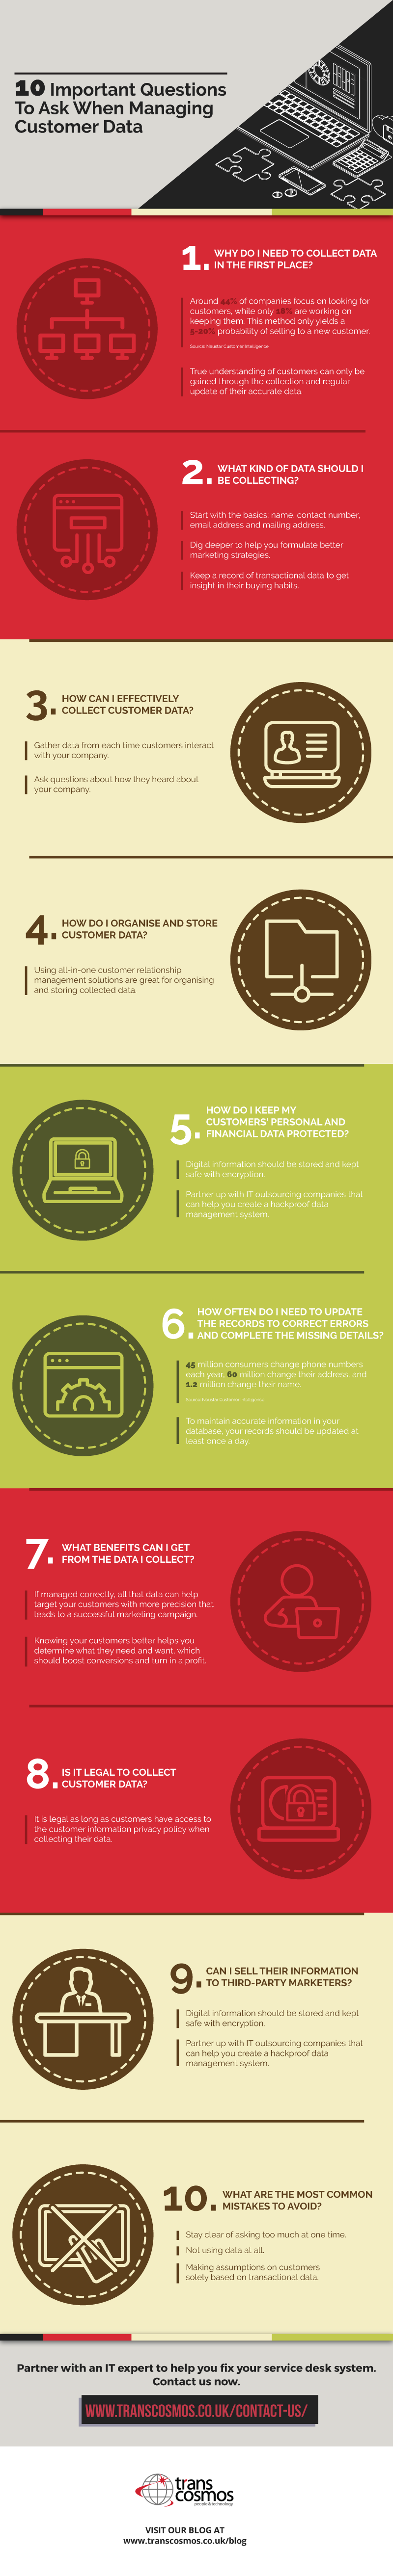 10 Important Questions to Ask When Managing Customer Data [Infographic]